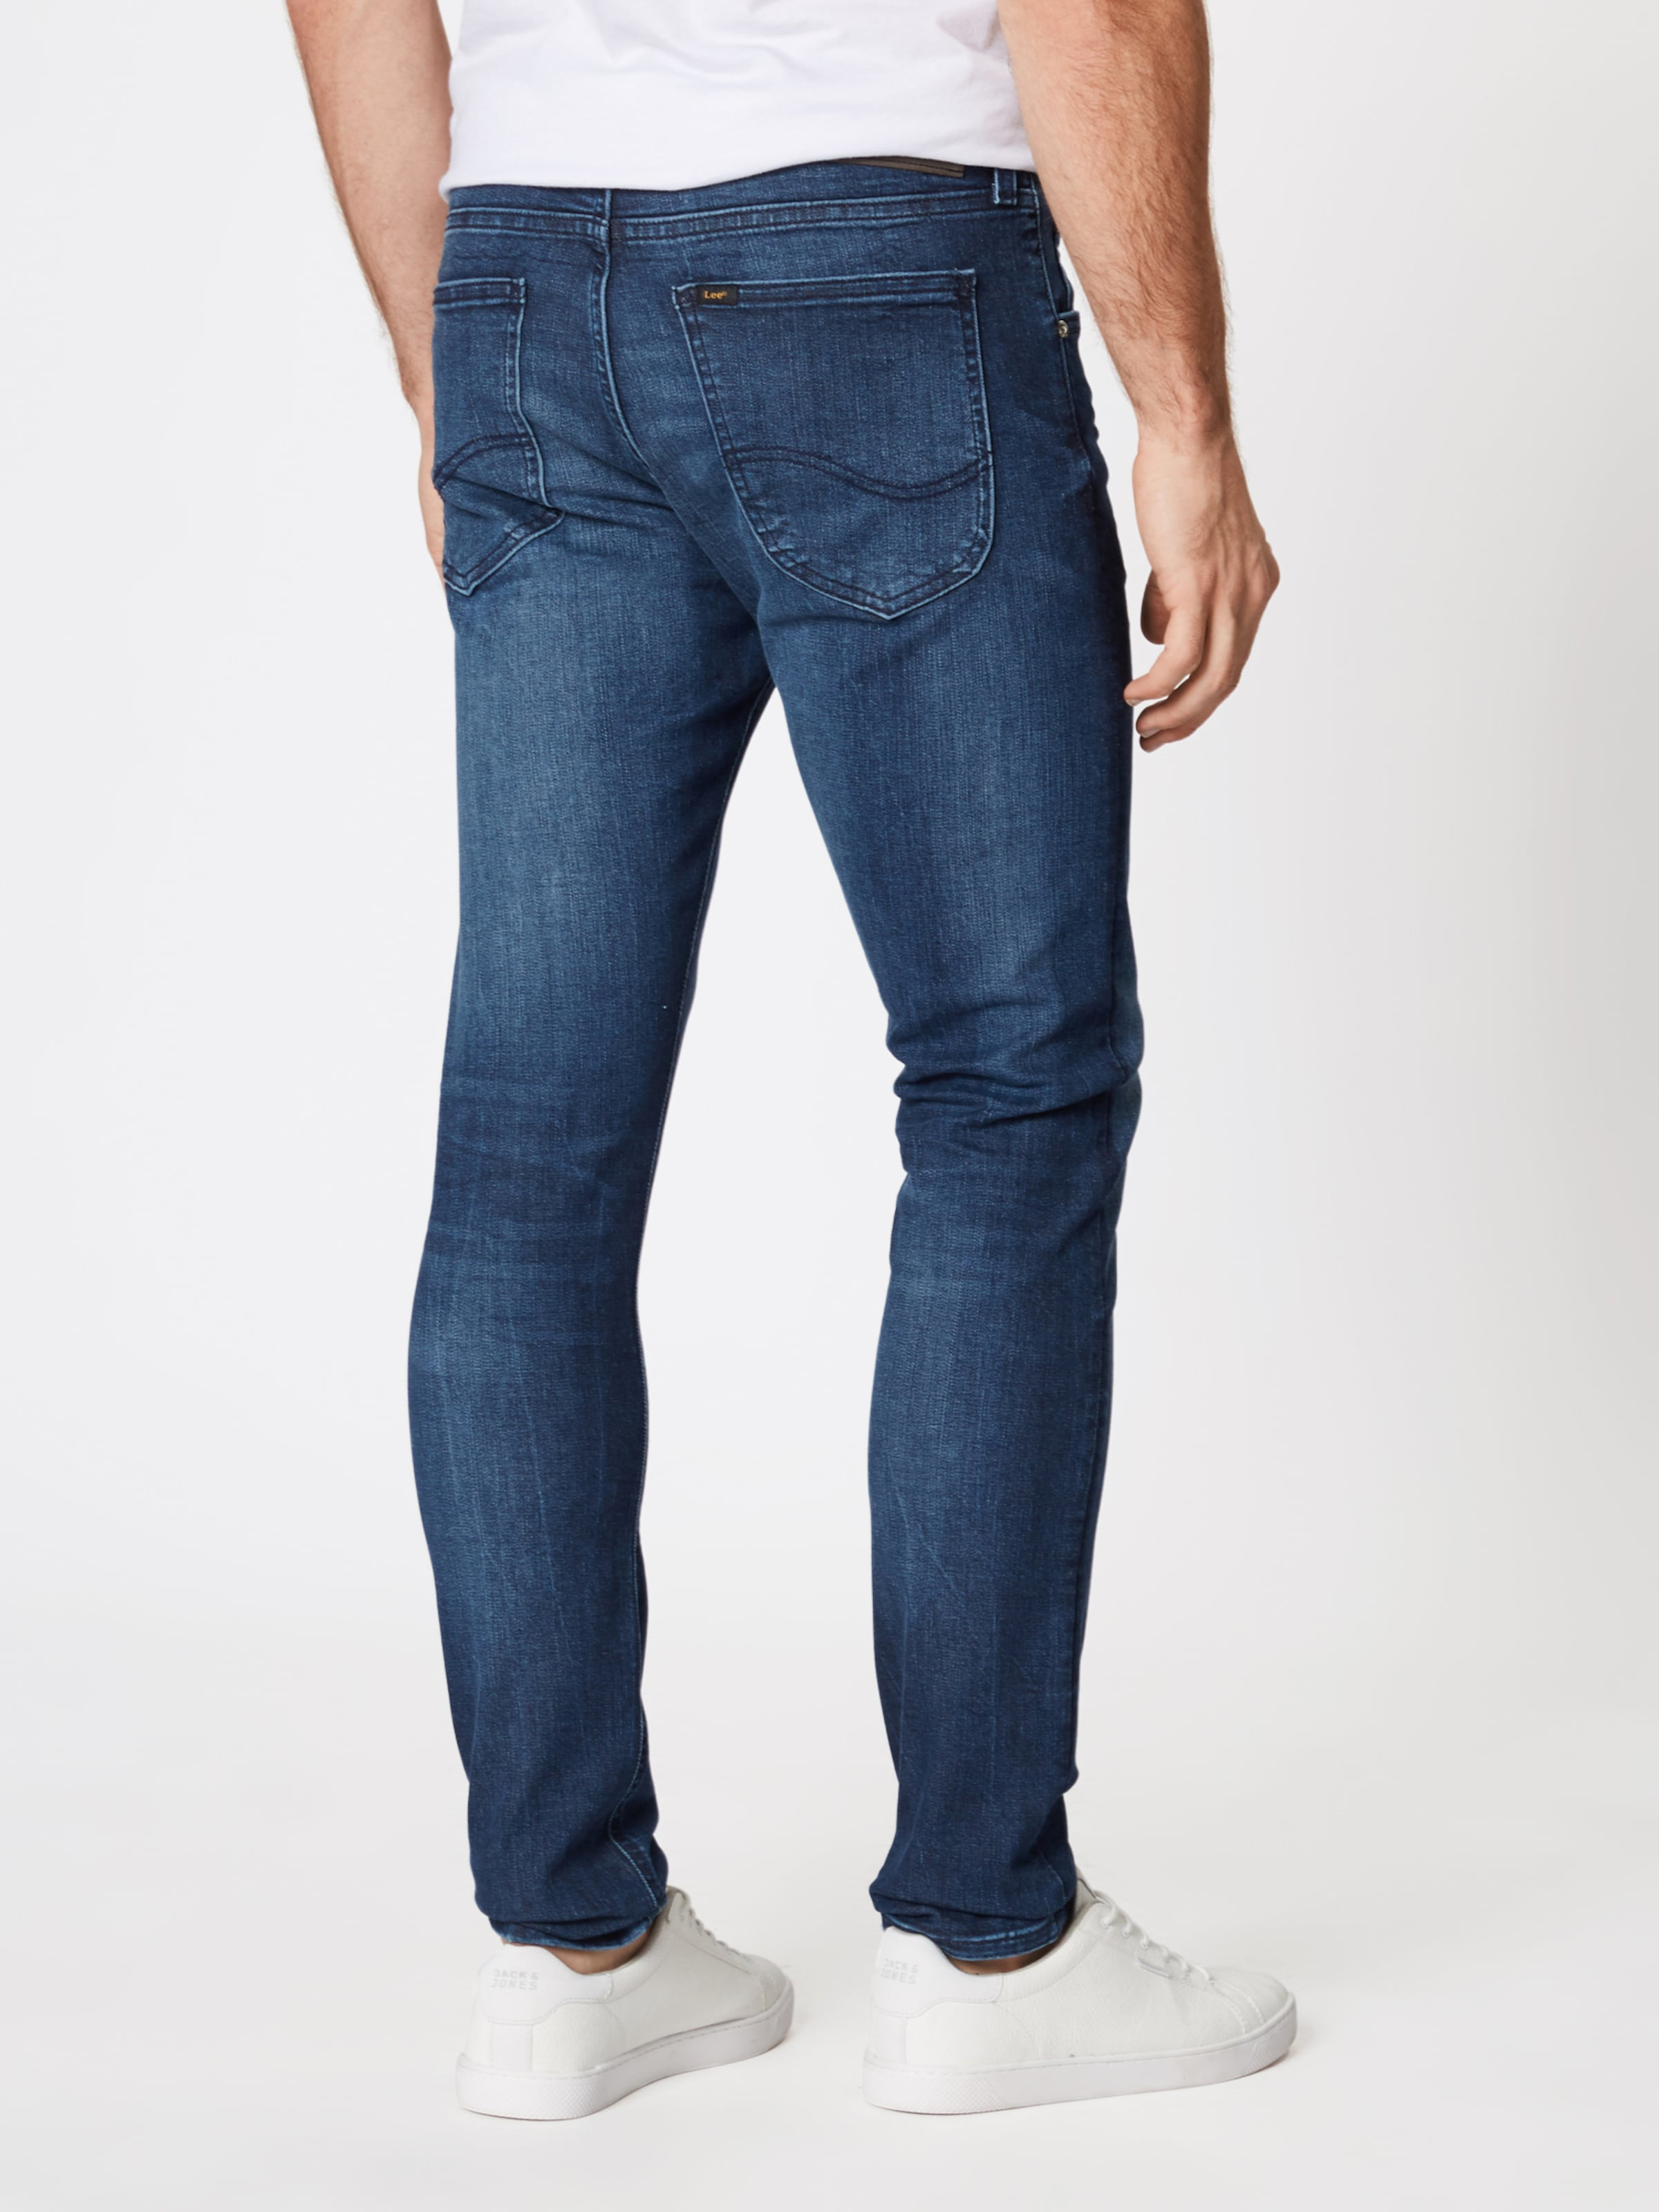 Jean Denim Bleu Lee 'luke' En SUzVpM